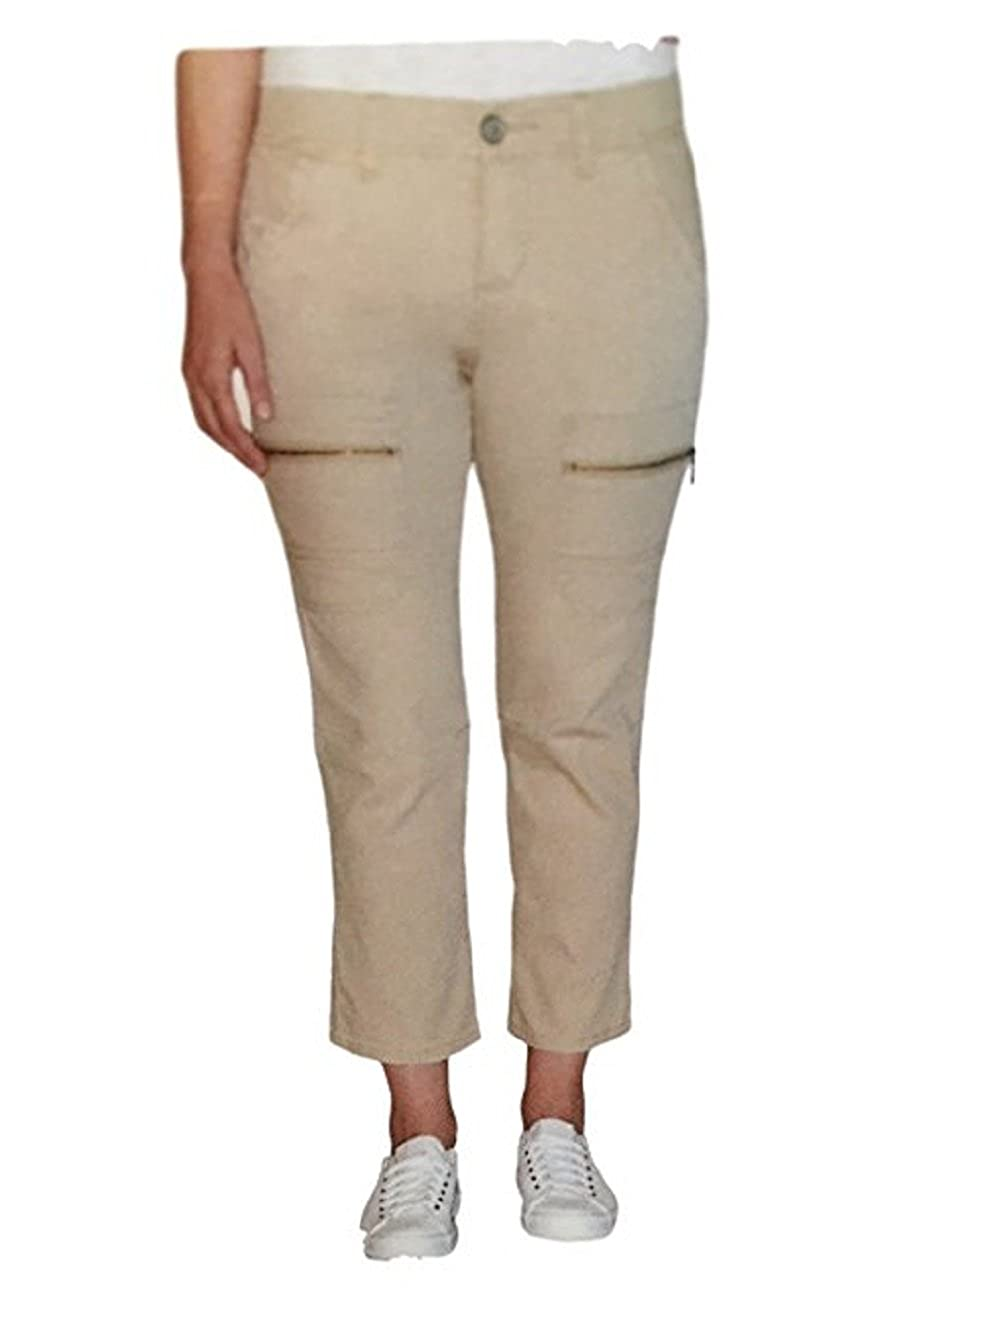 Supplies By Unionbay Womens Capri Cropped Pants (Walnut, 10)